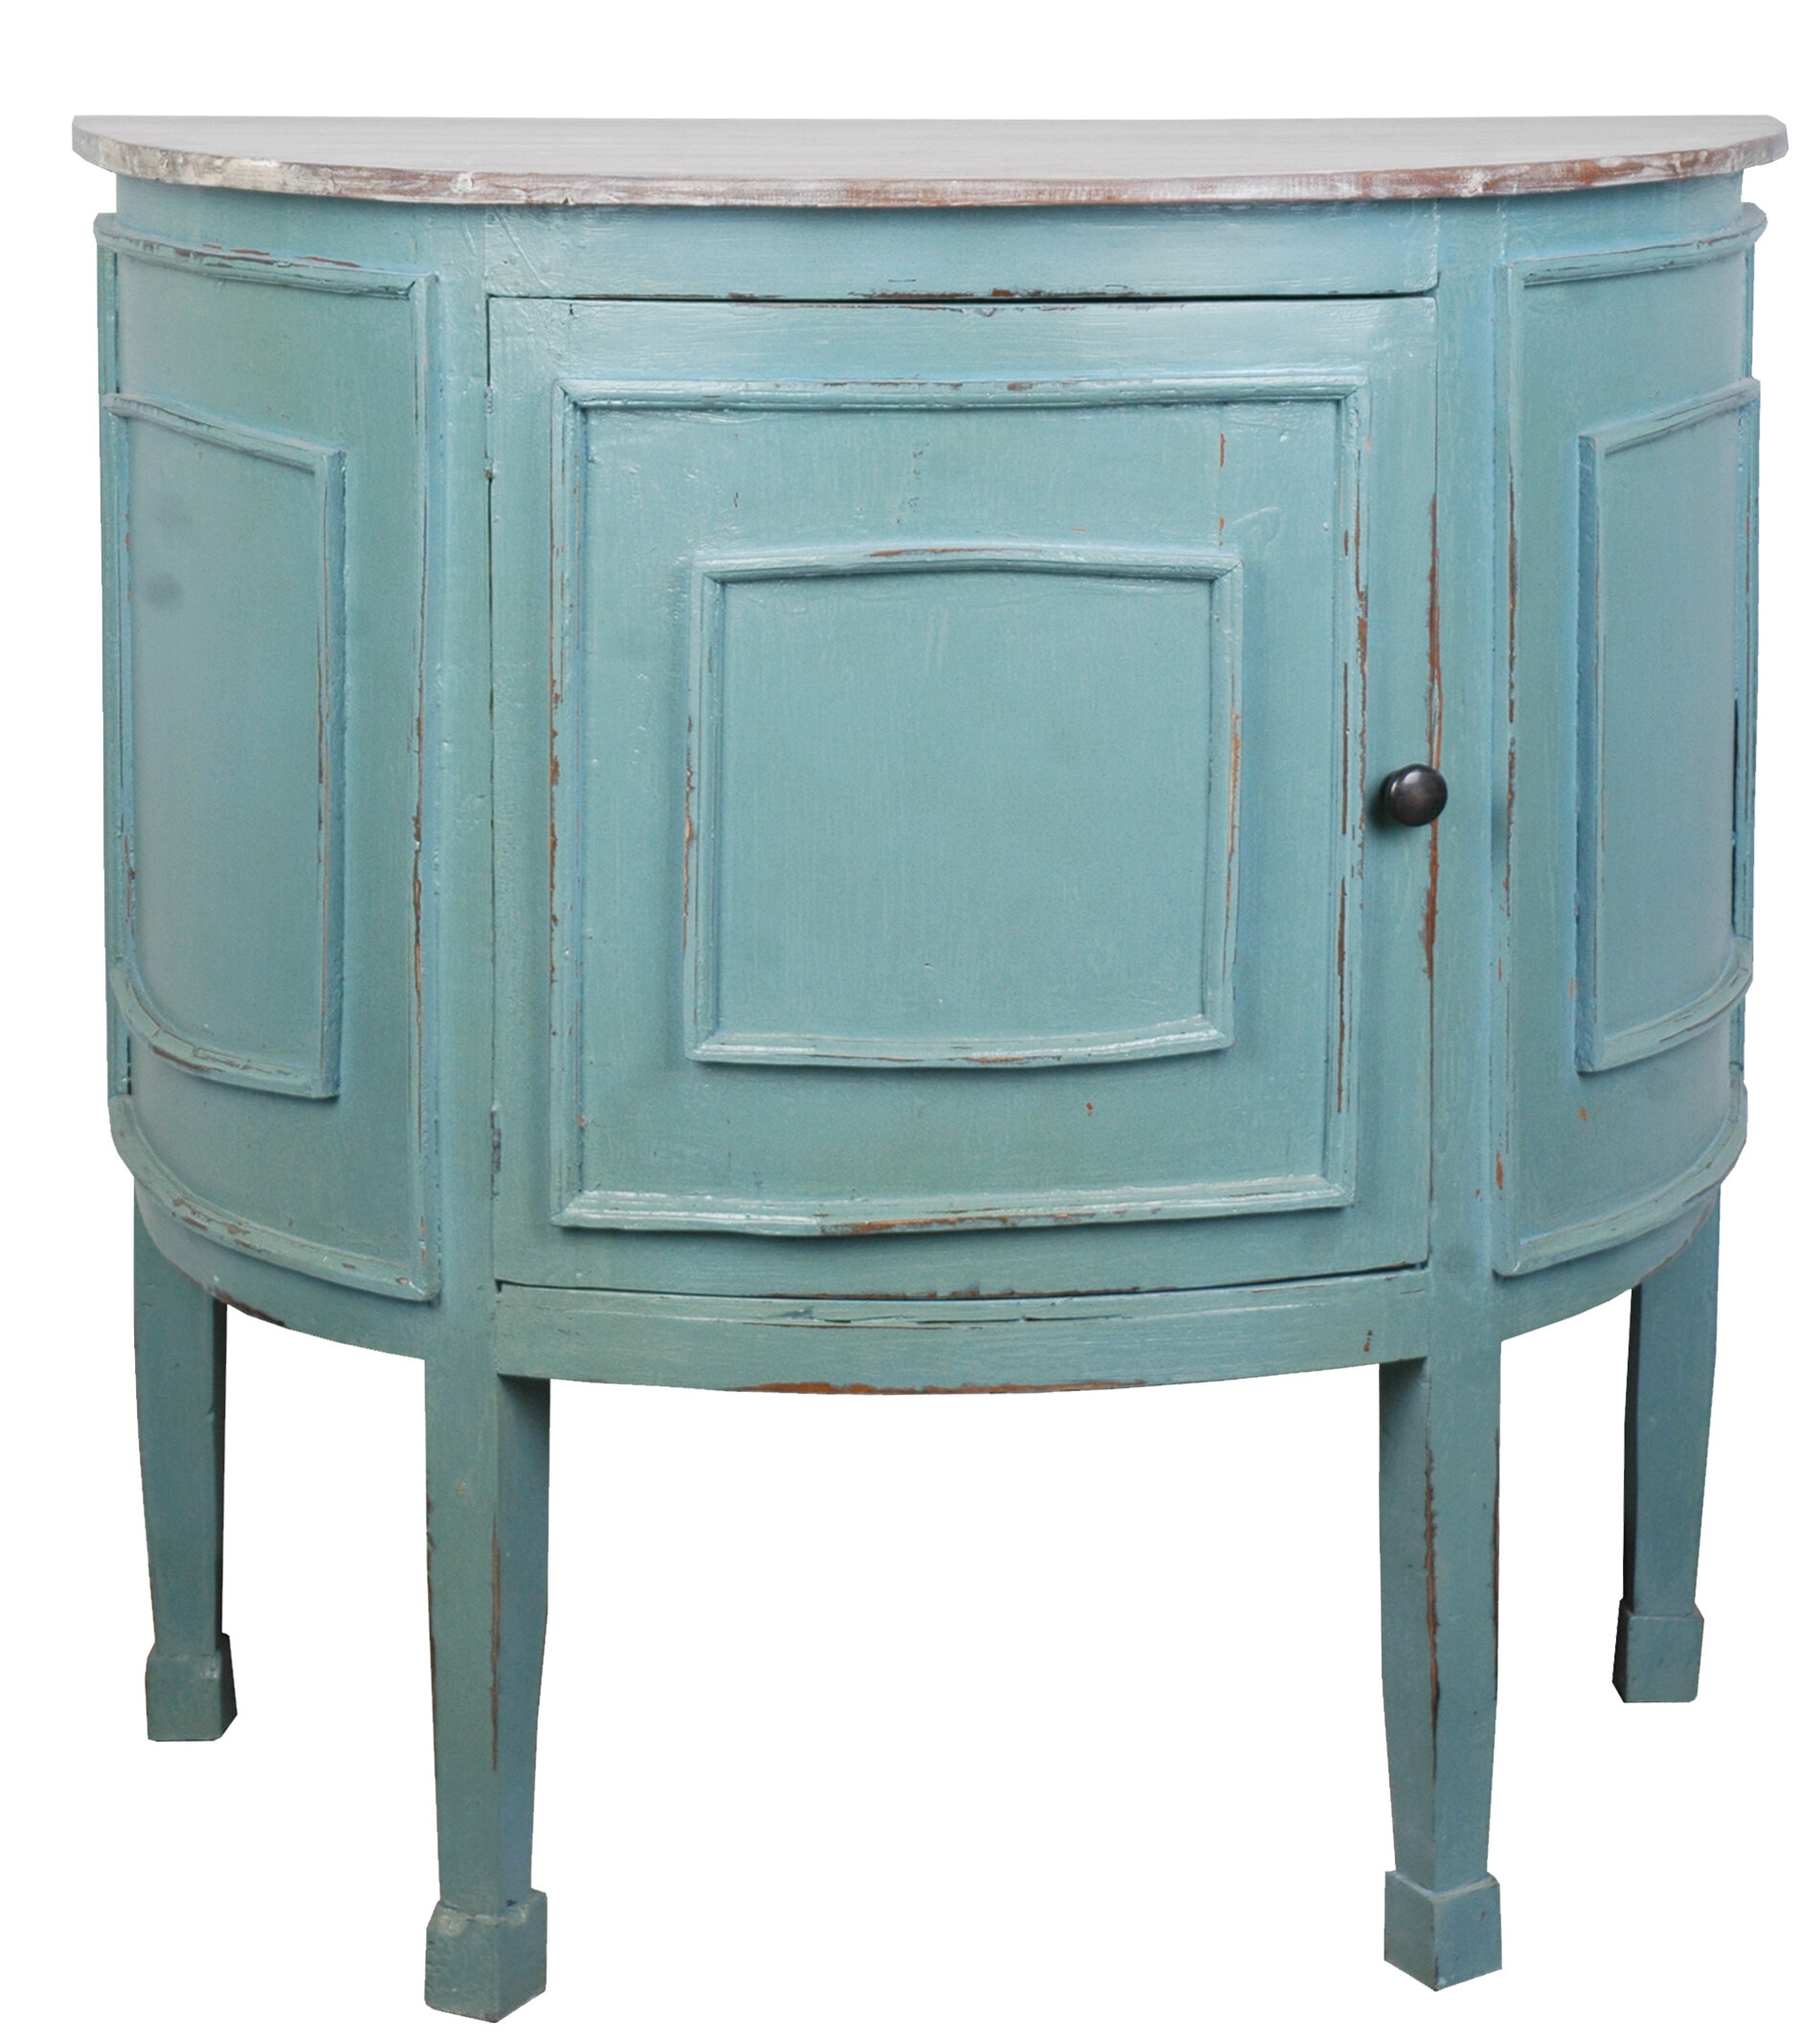 Wellfleet Half Round 1 Door Accent Cabinet